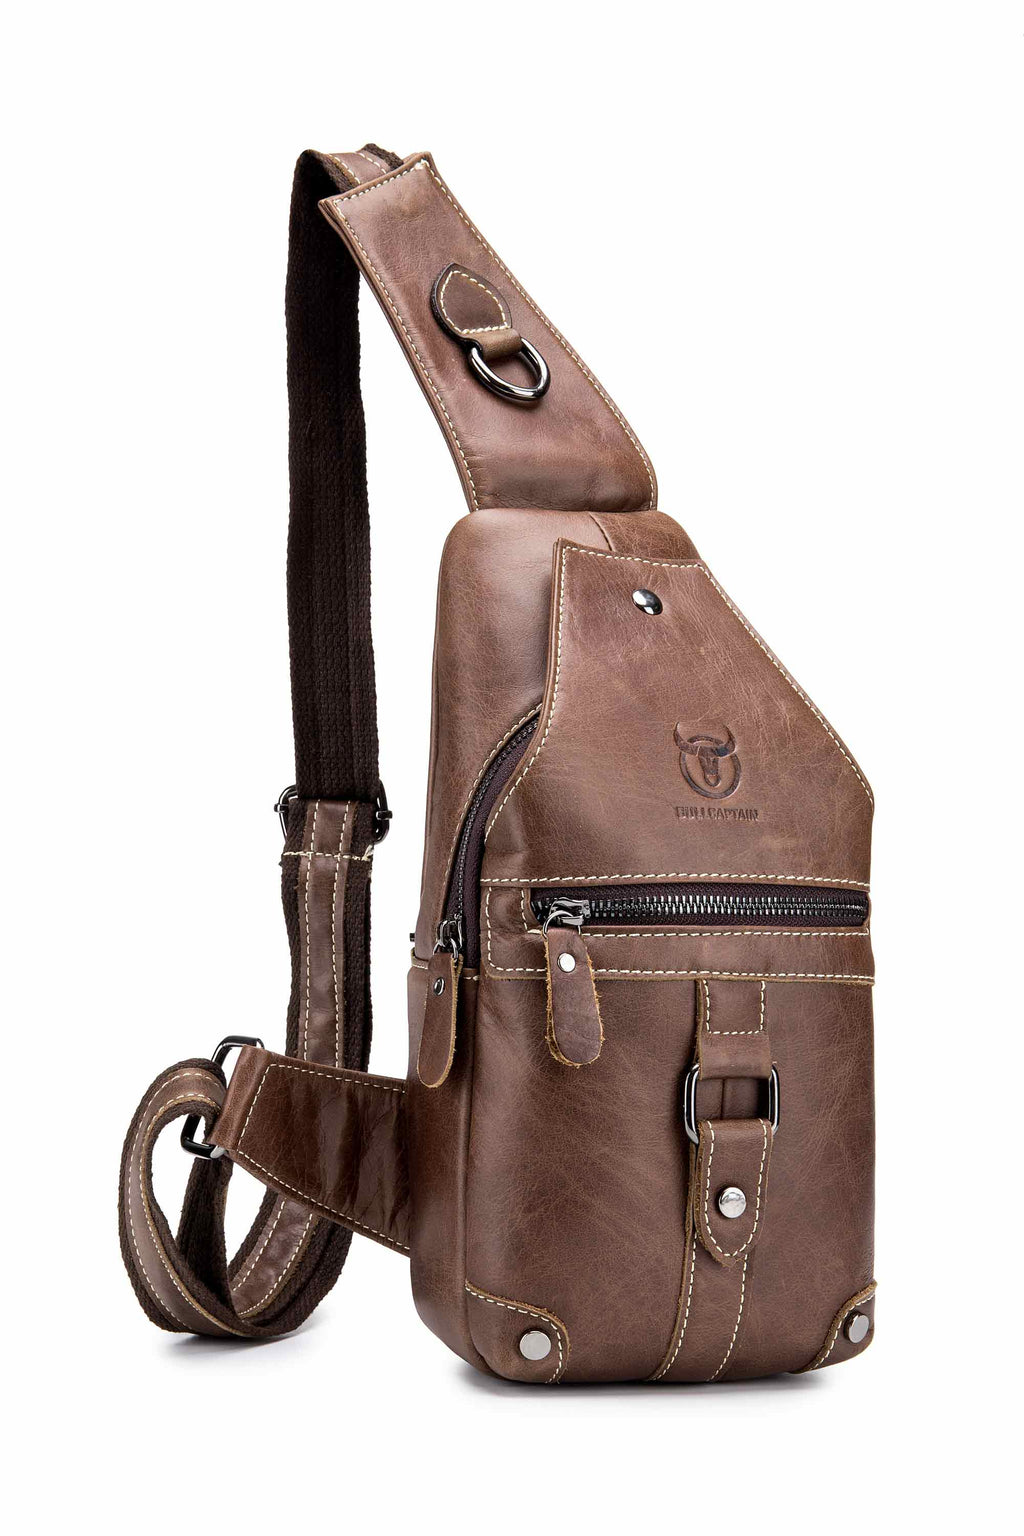 Bullcaptain Leather Sling Bag Genuine Leather Travel Chest Bag For Pad Size - 130